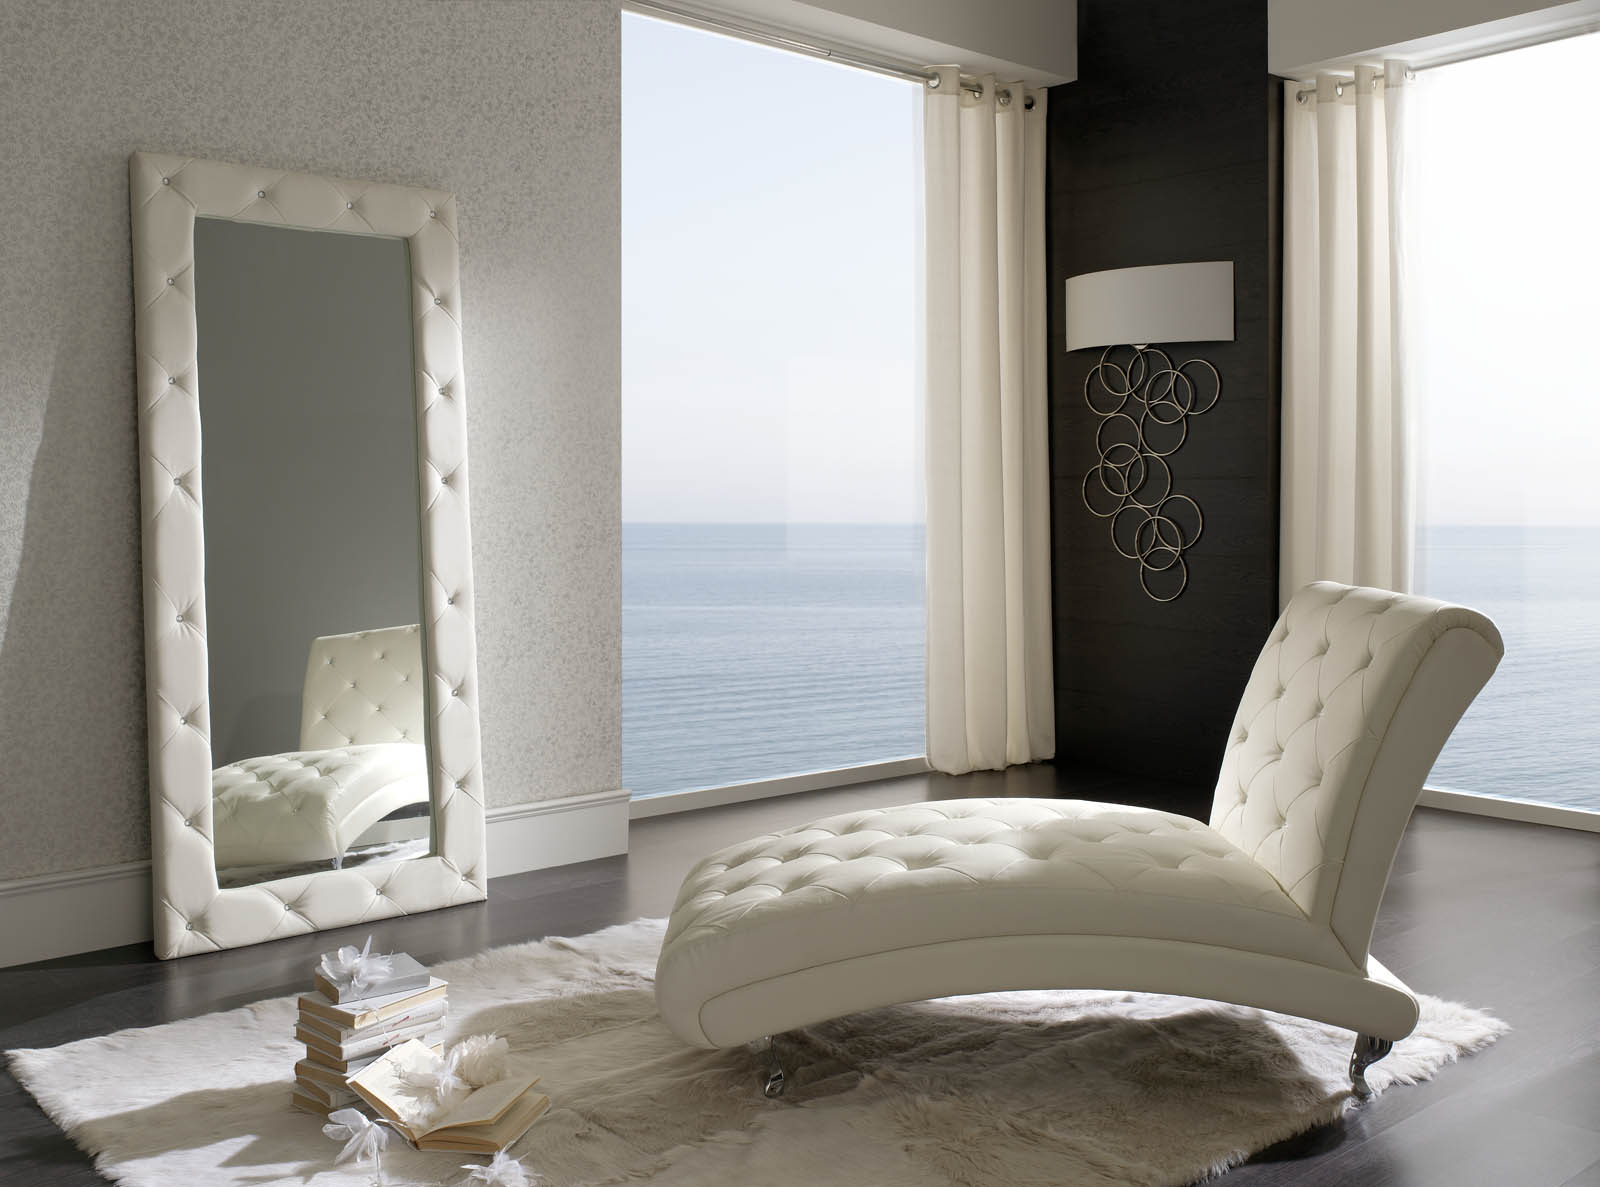 Made in Spain Leather Bedroom Contemporary Design with Extra Storage ...